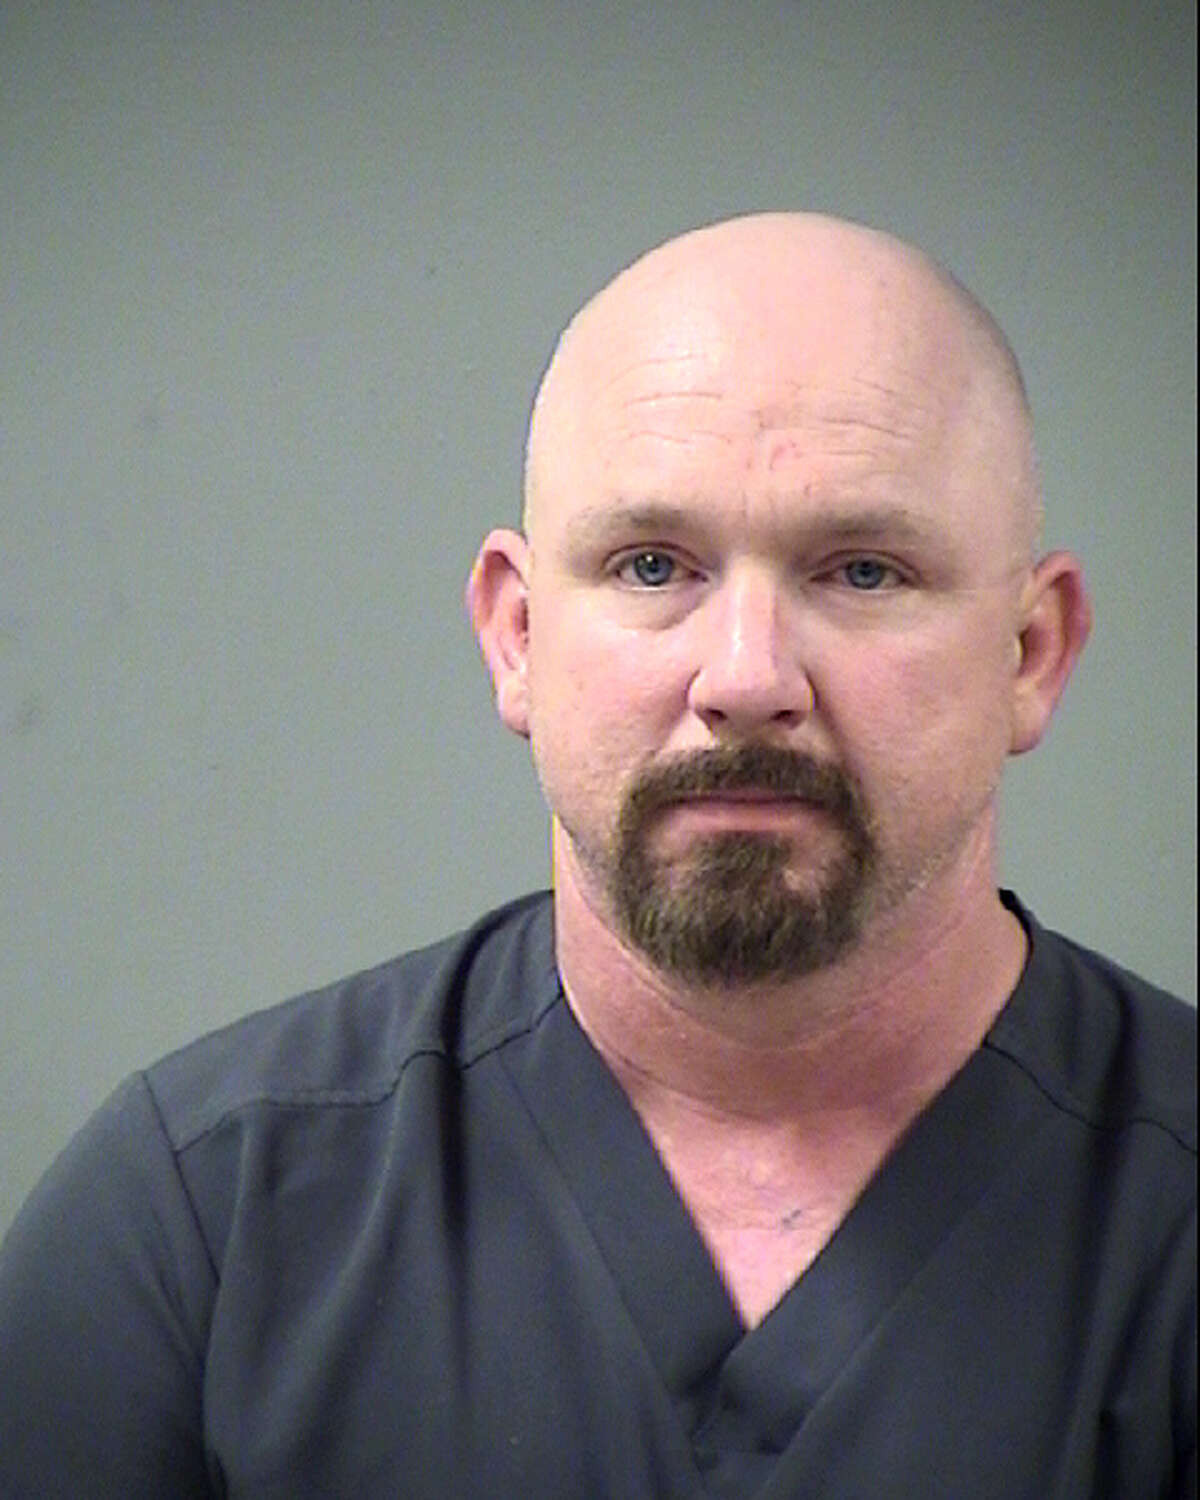 Jack Miller, 45, faces a charge of interference with public duties.